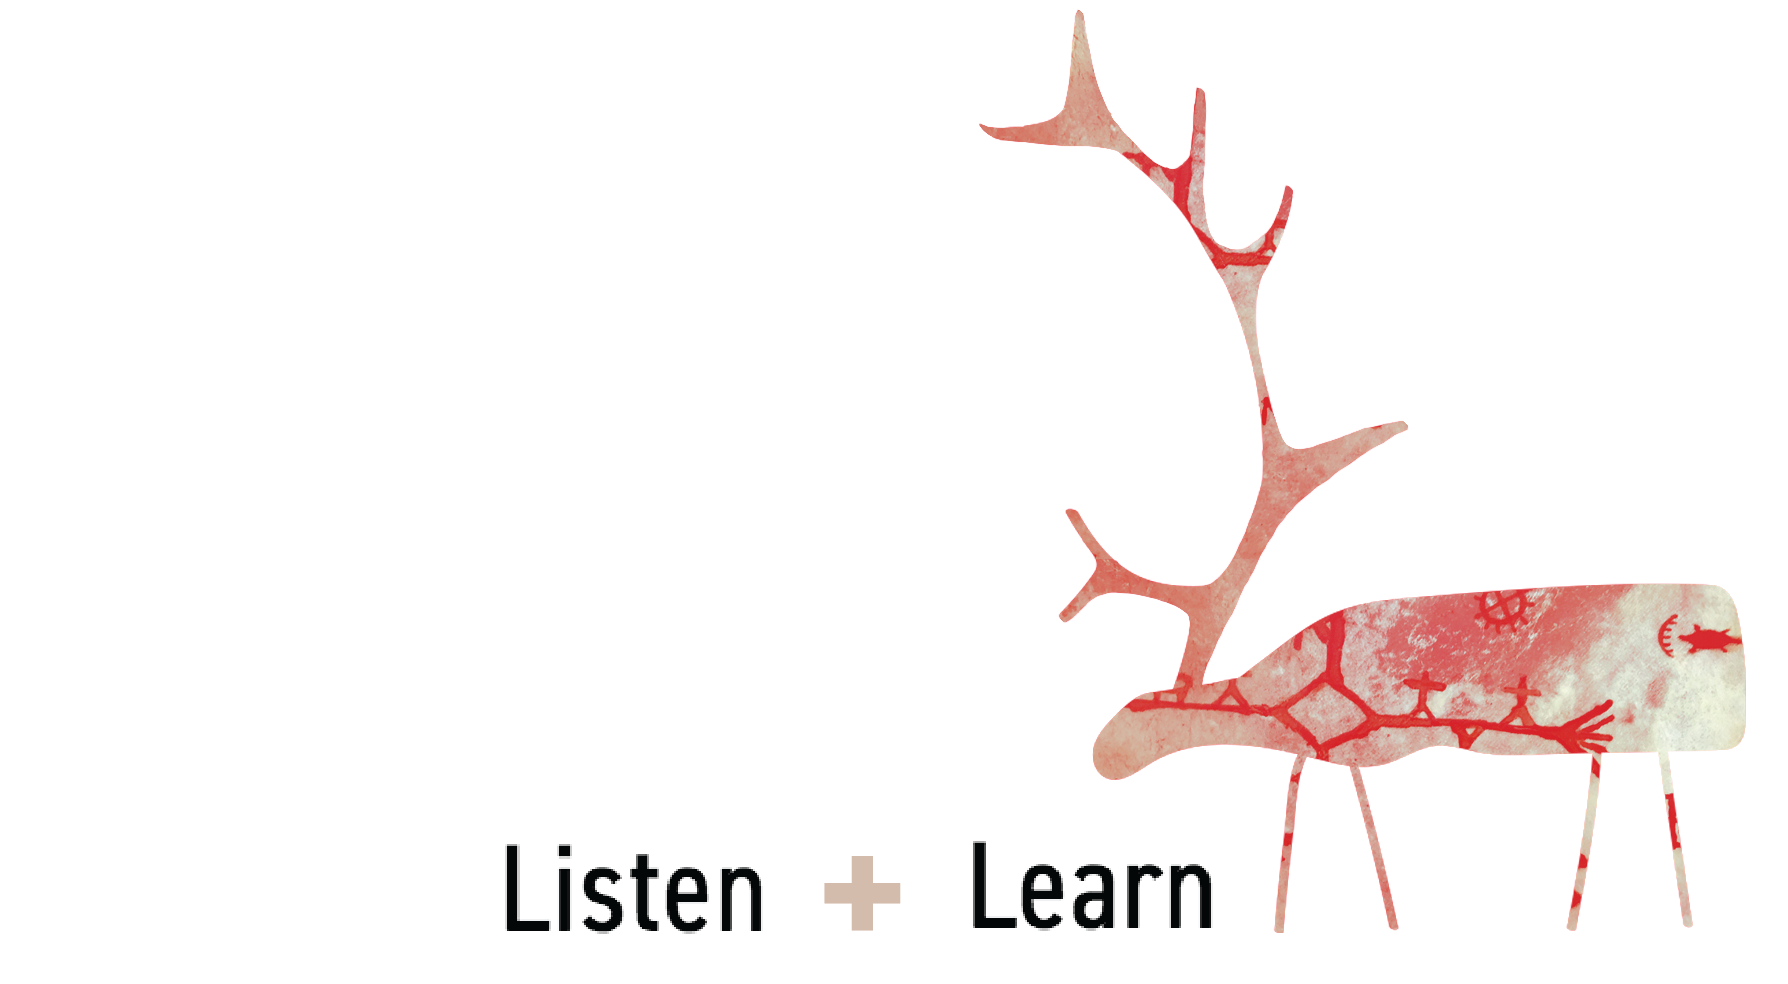 listen and learn-01.png